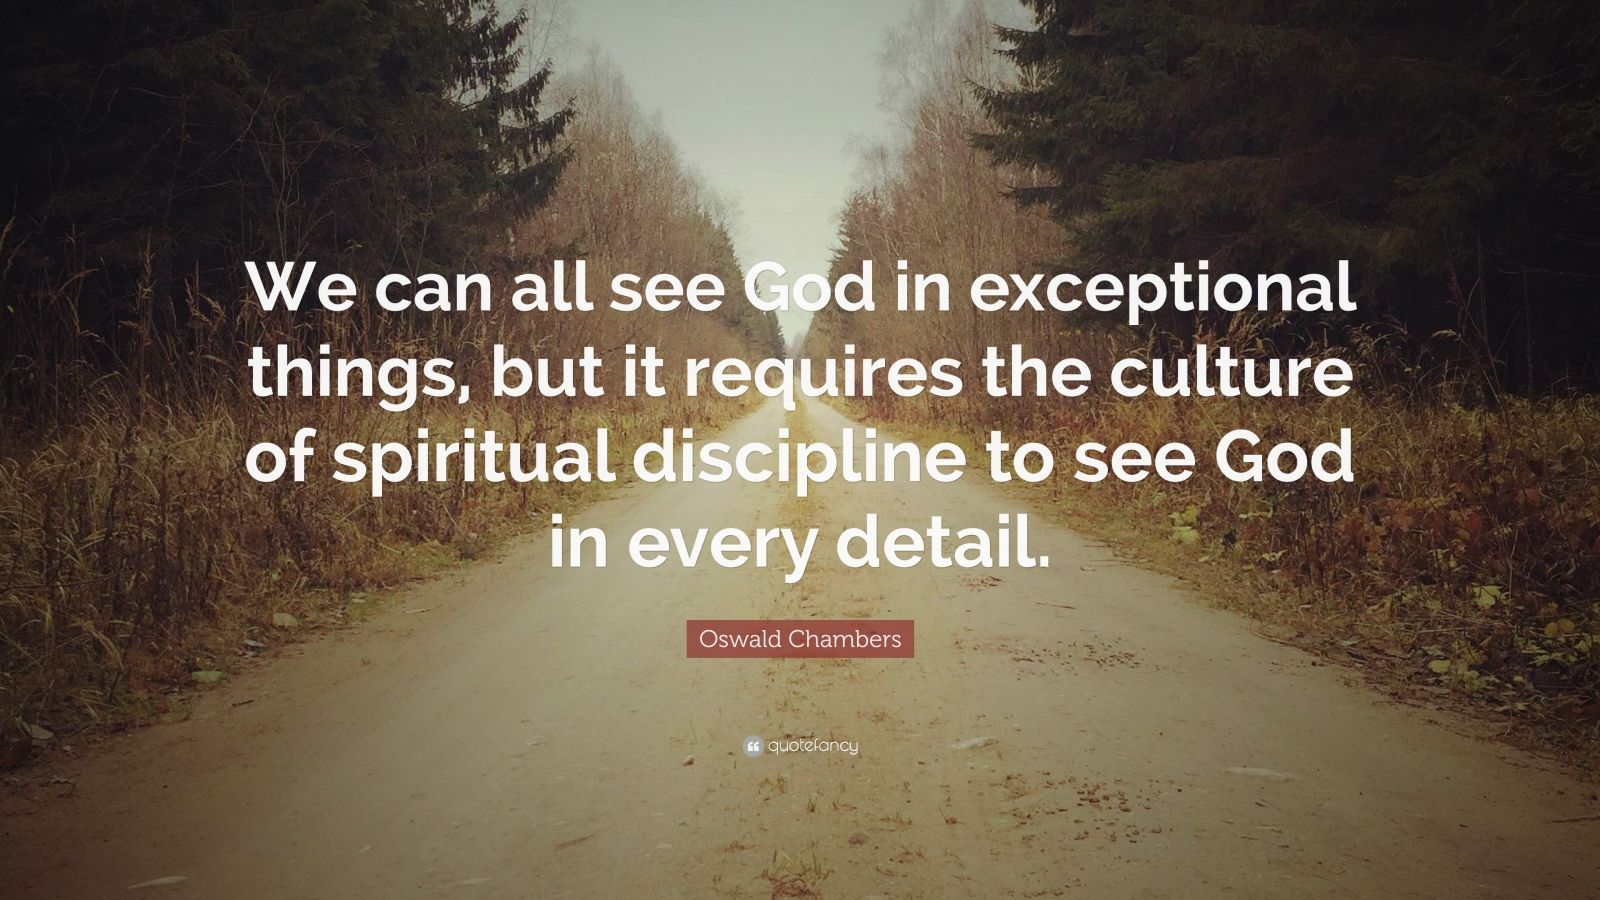 Nick Vujicic Quotes Wallpaper Oswald Chambers Quote We Can All See God In Exceptional